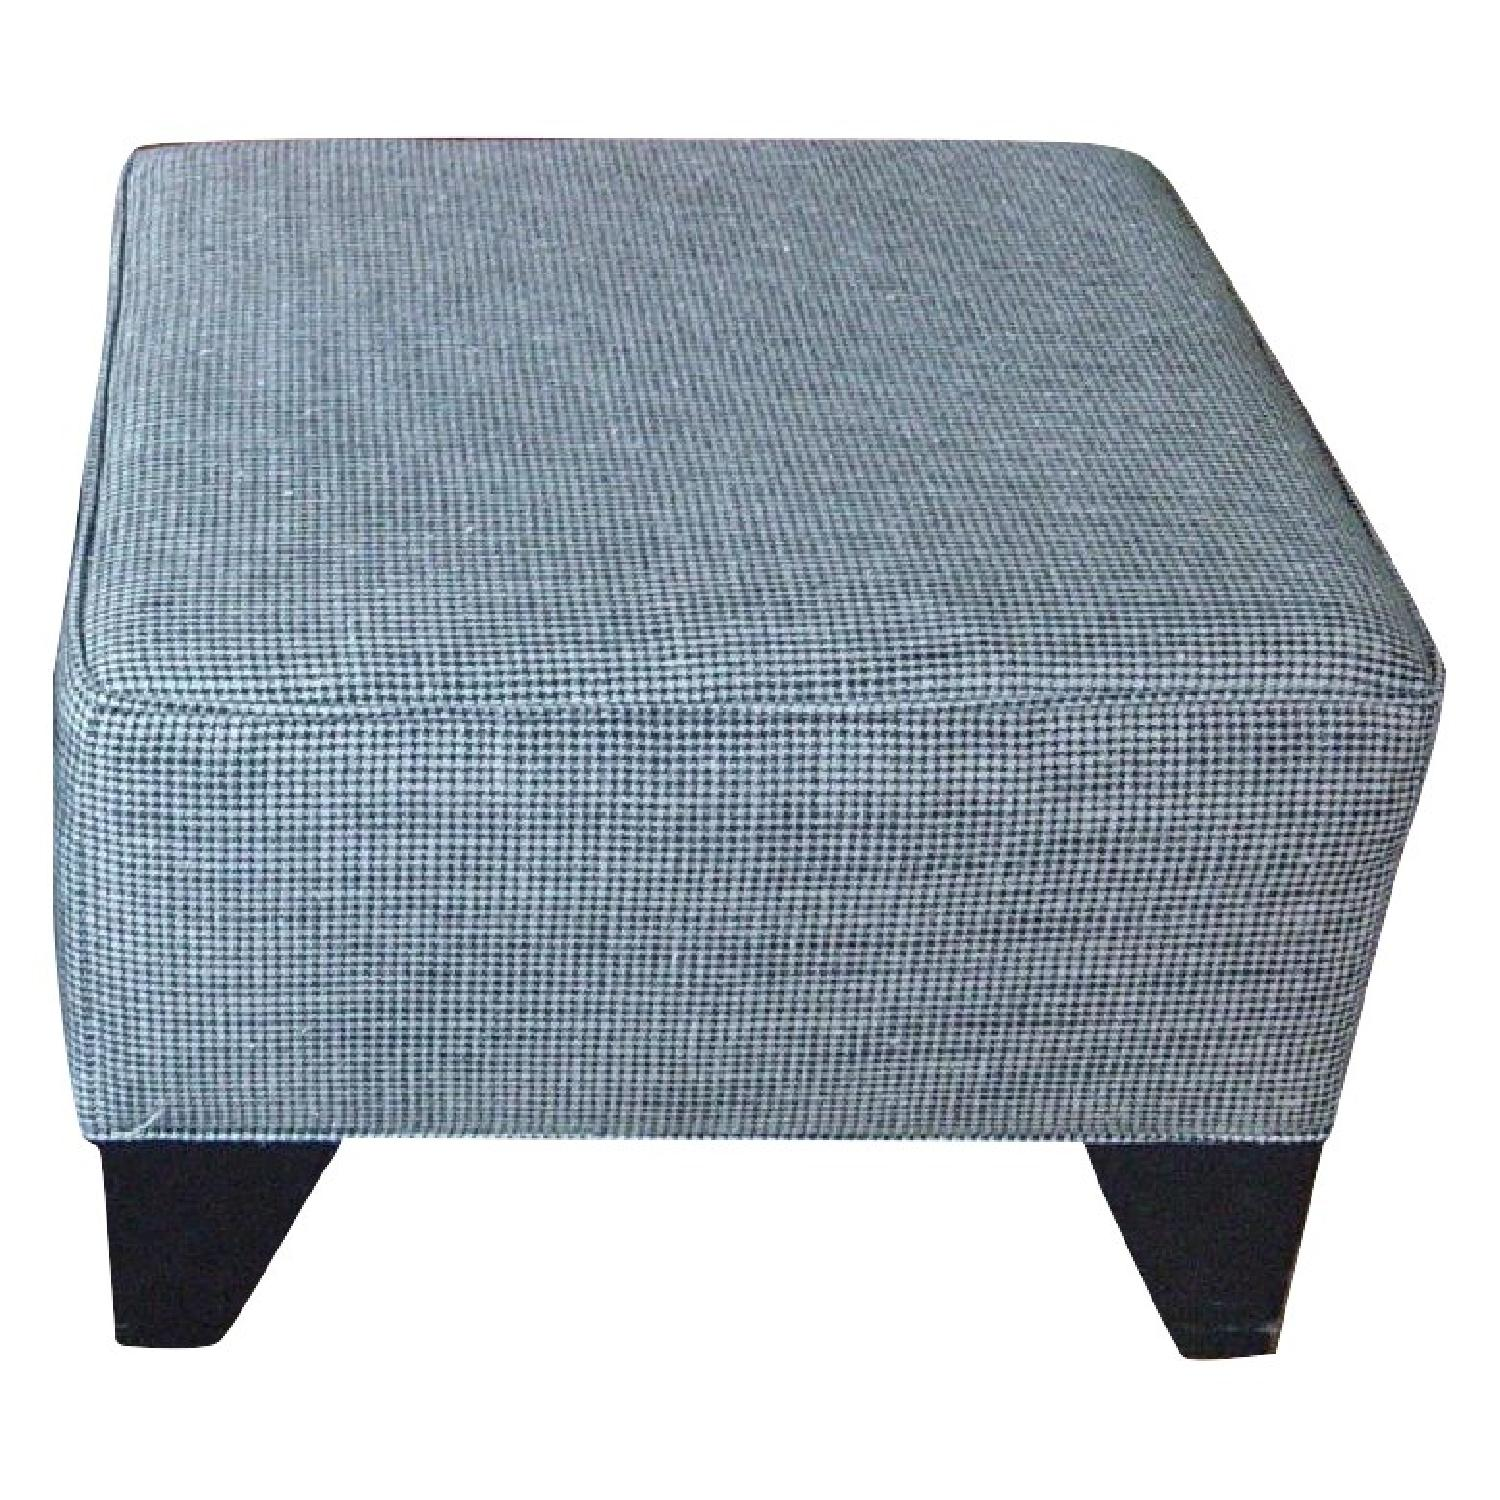 Houndstooth Upholstered Ottomans